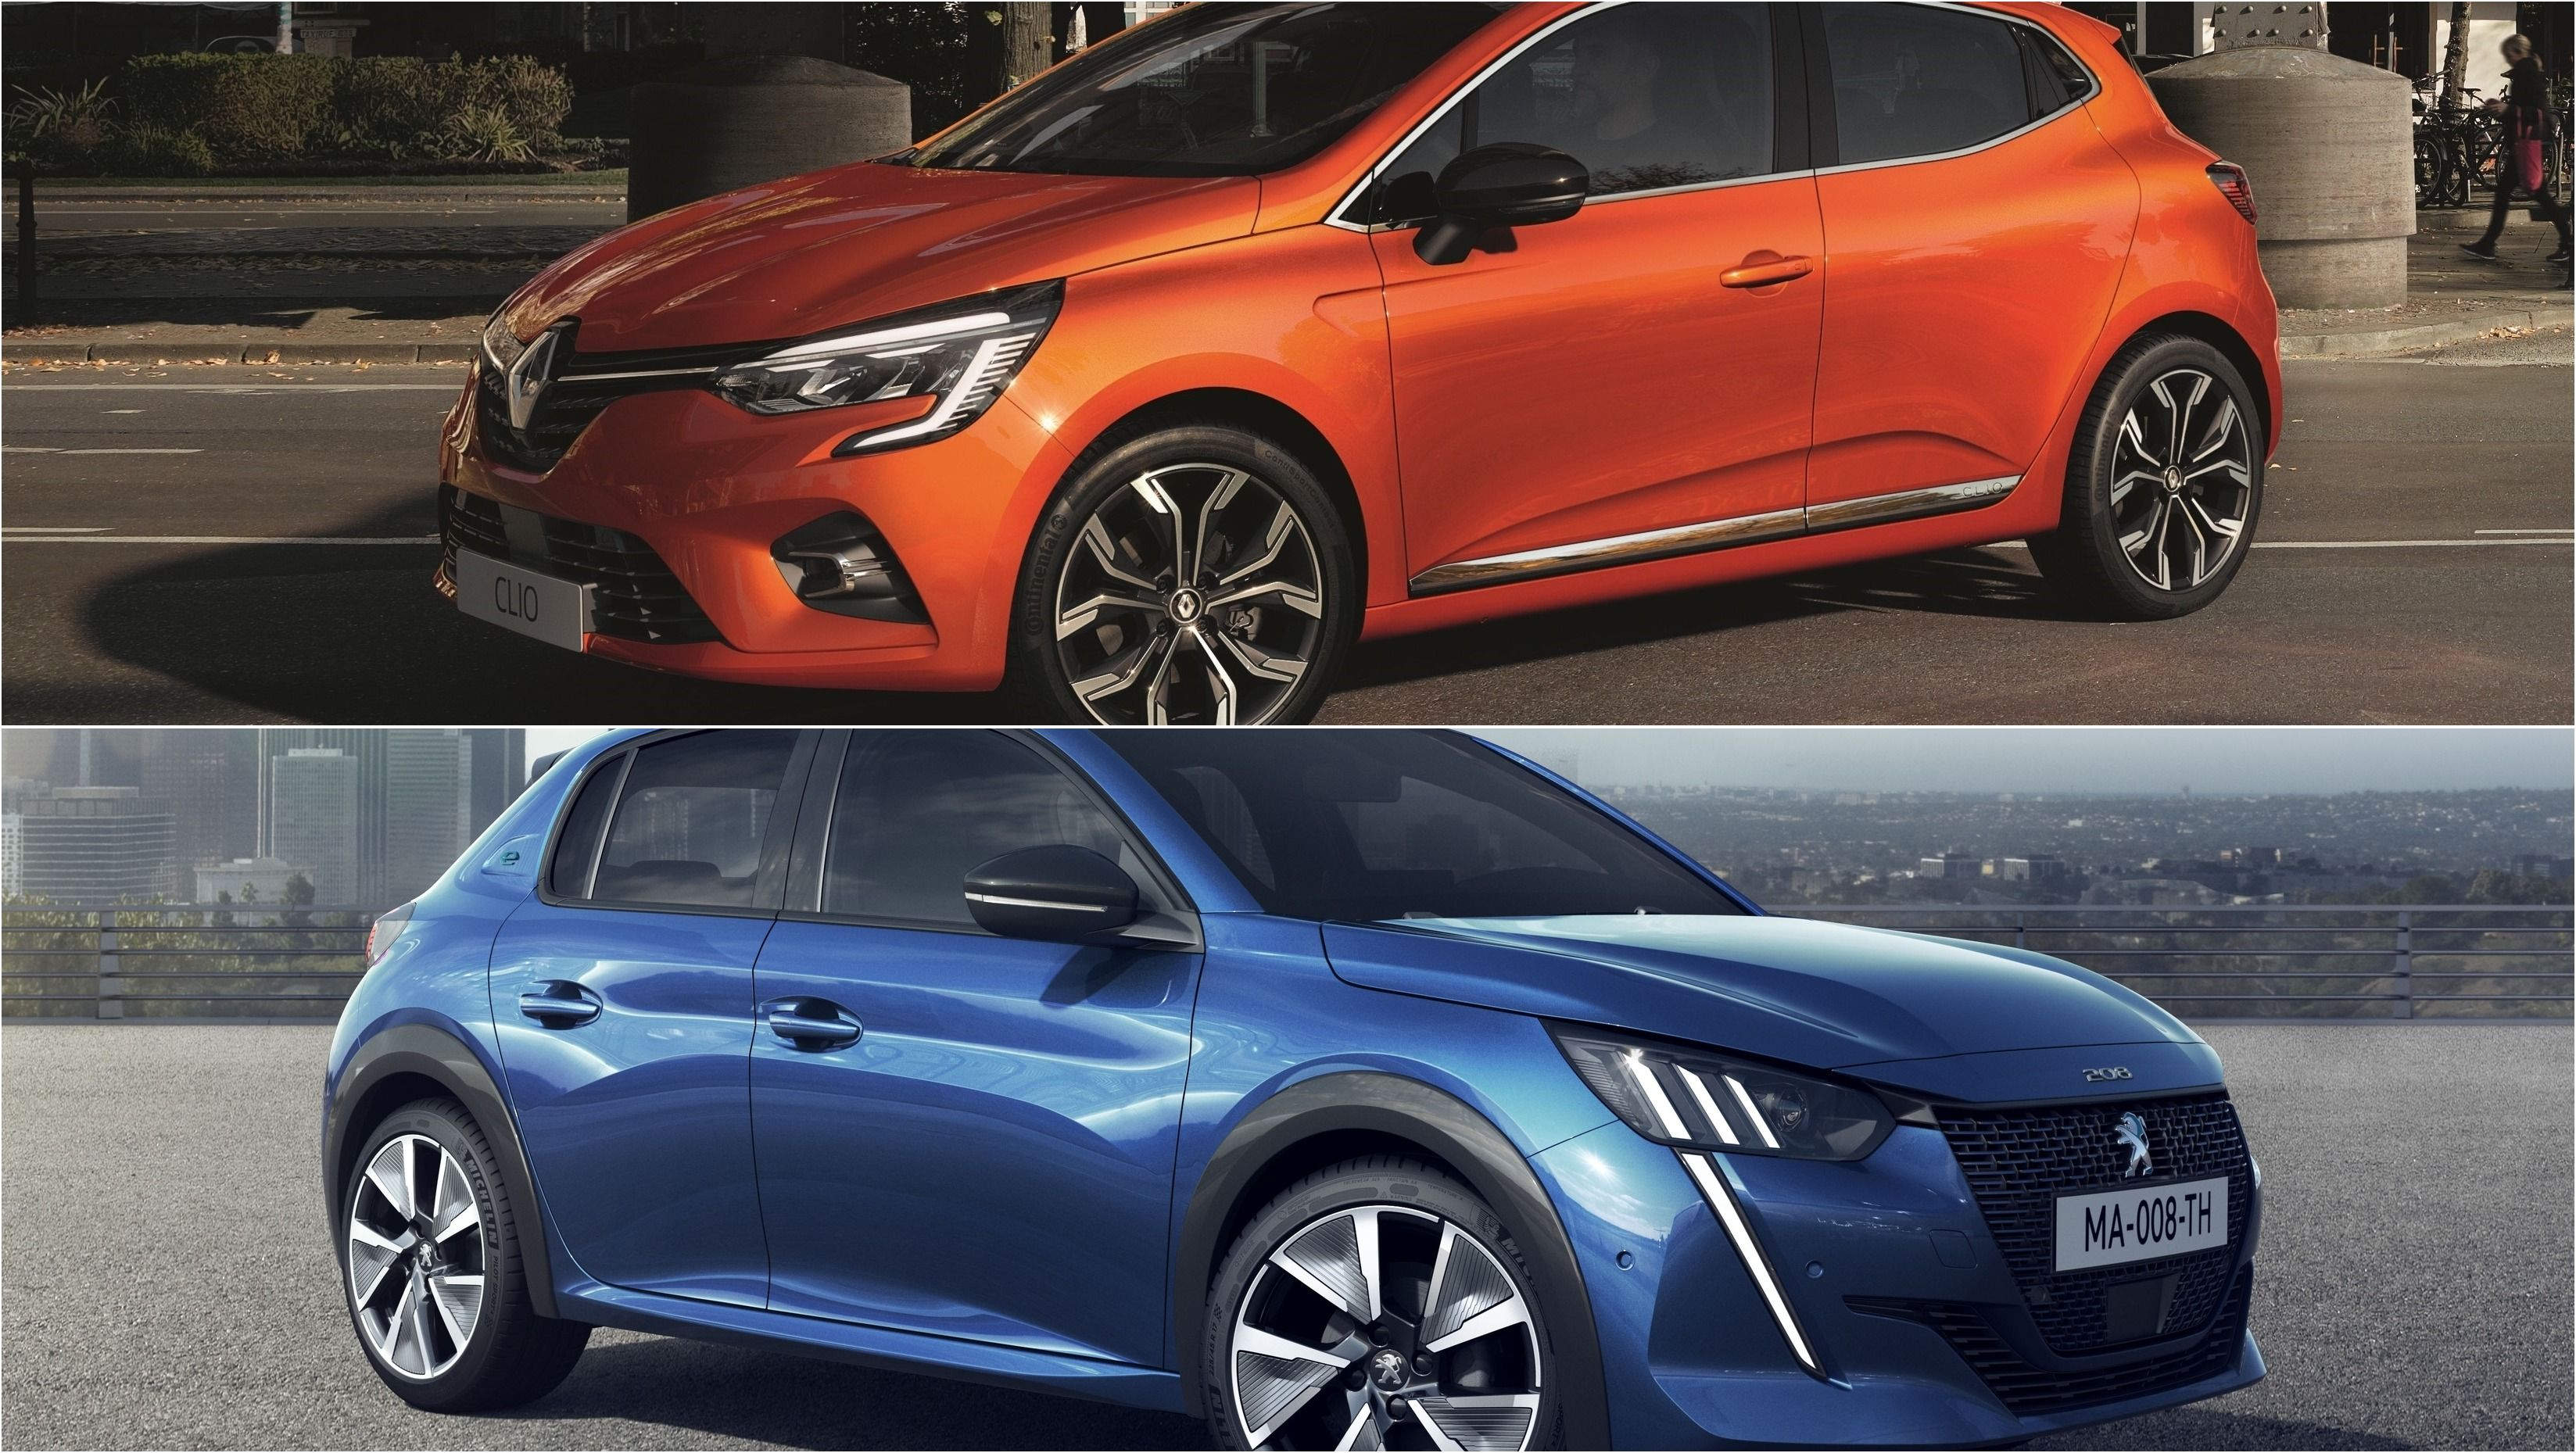 2019 Peugeot 208 Vs 2019 Renault Clio Peugeot New Clio Latest Cars